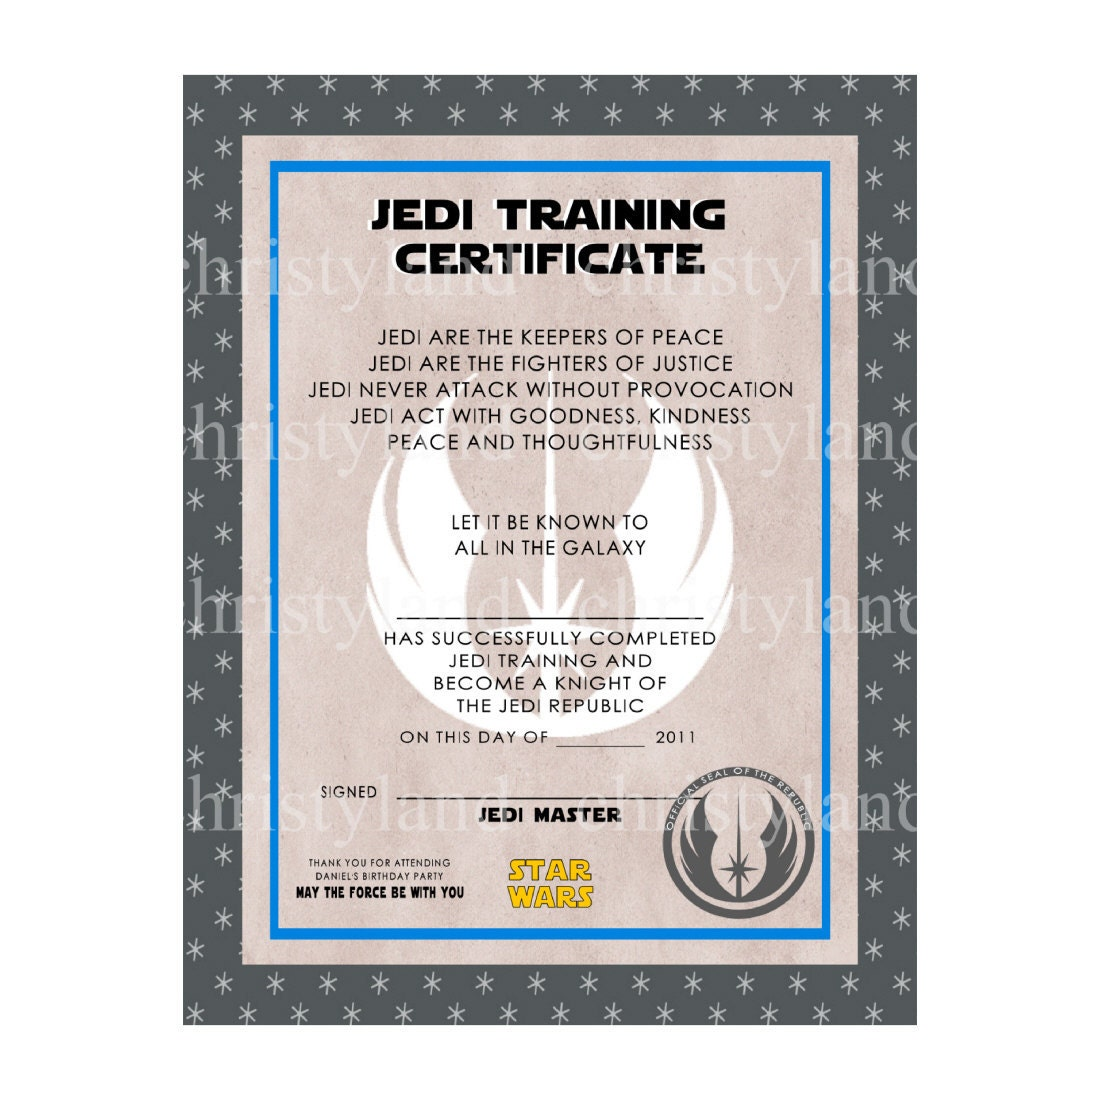 jedi knight certificate template - star wars jedi training certificate template hot girls